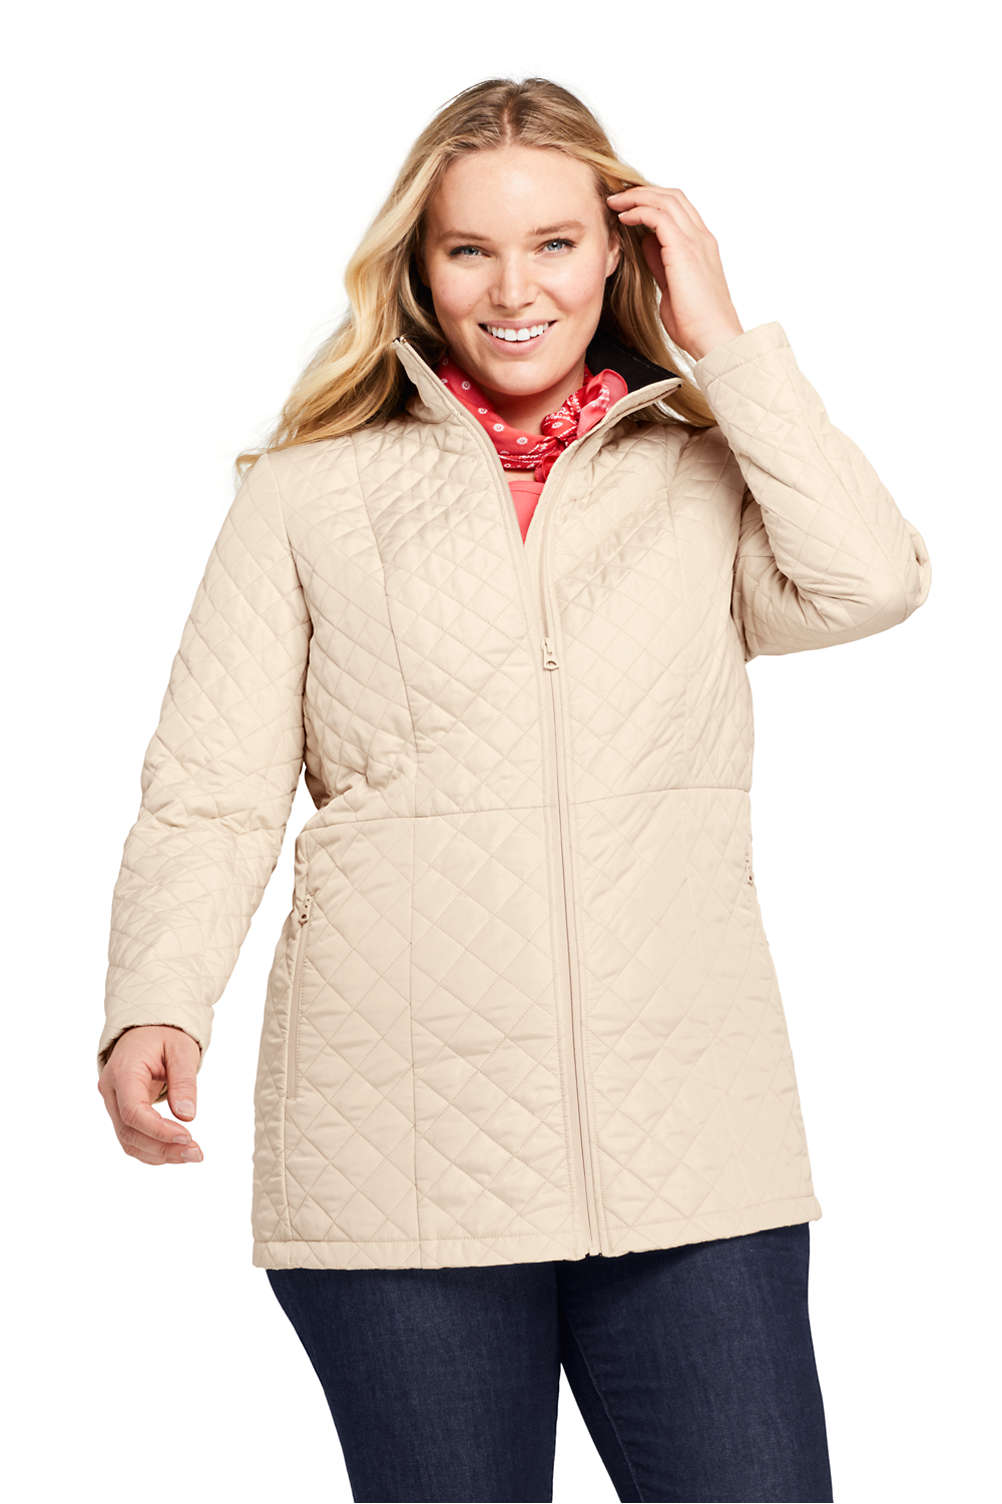 adc9389bca Women s Plus Size Quilted Insulated Long Jacket from Lands  End